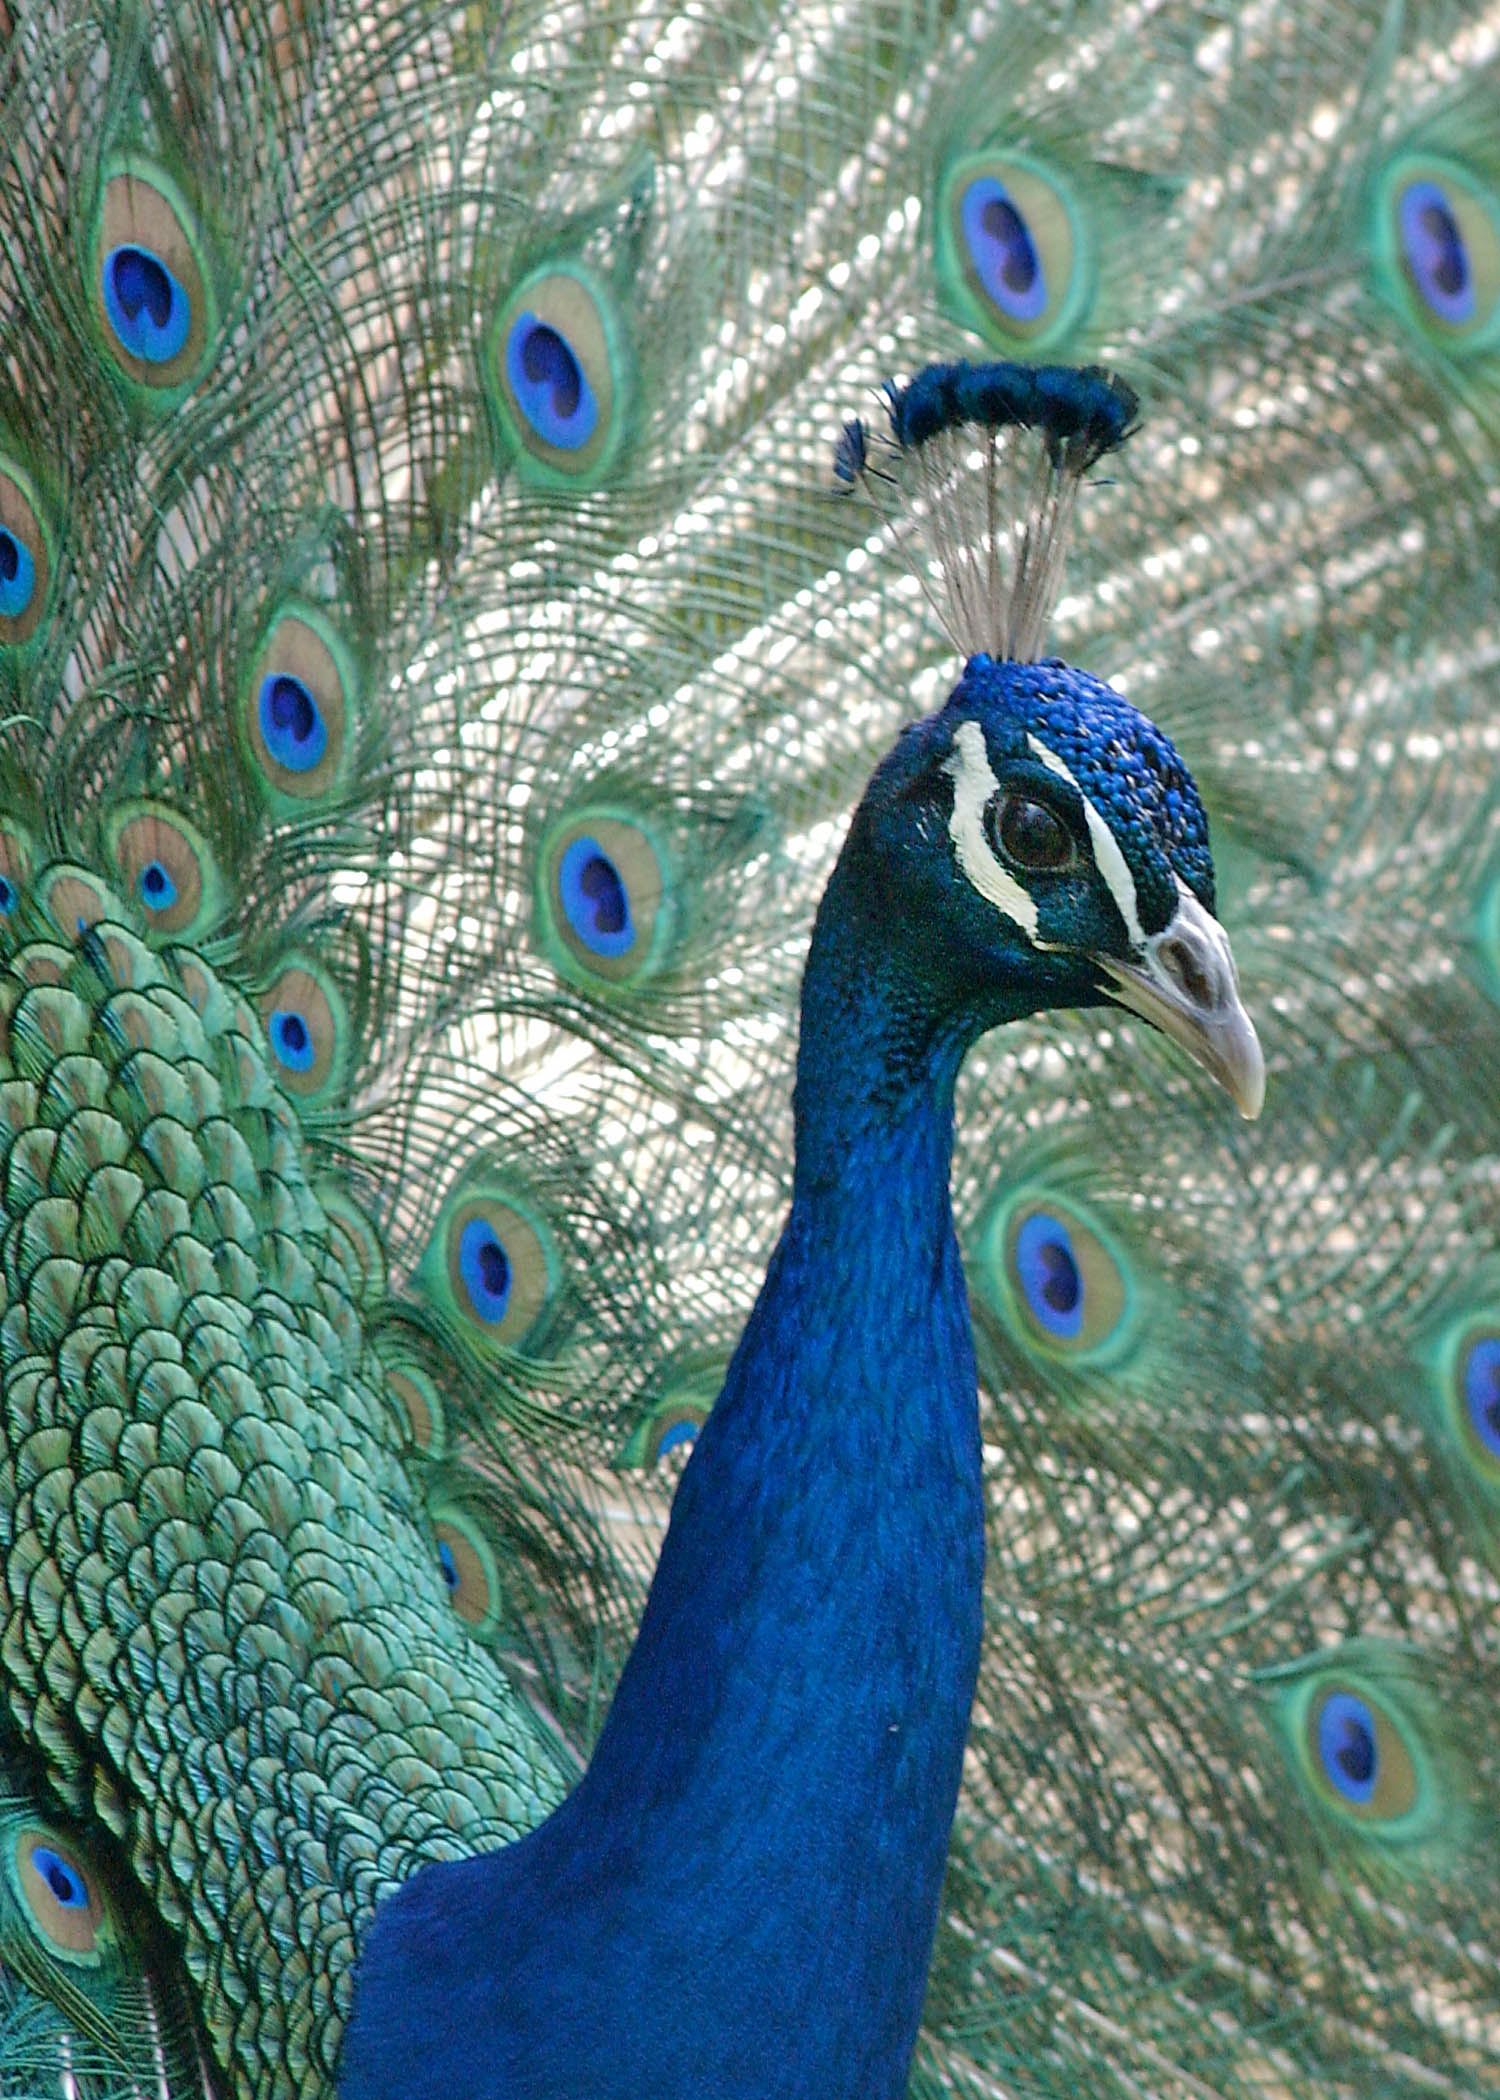 City Of South Gate >> Chicago Zoological Society - Peacock